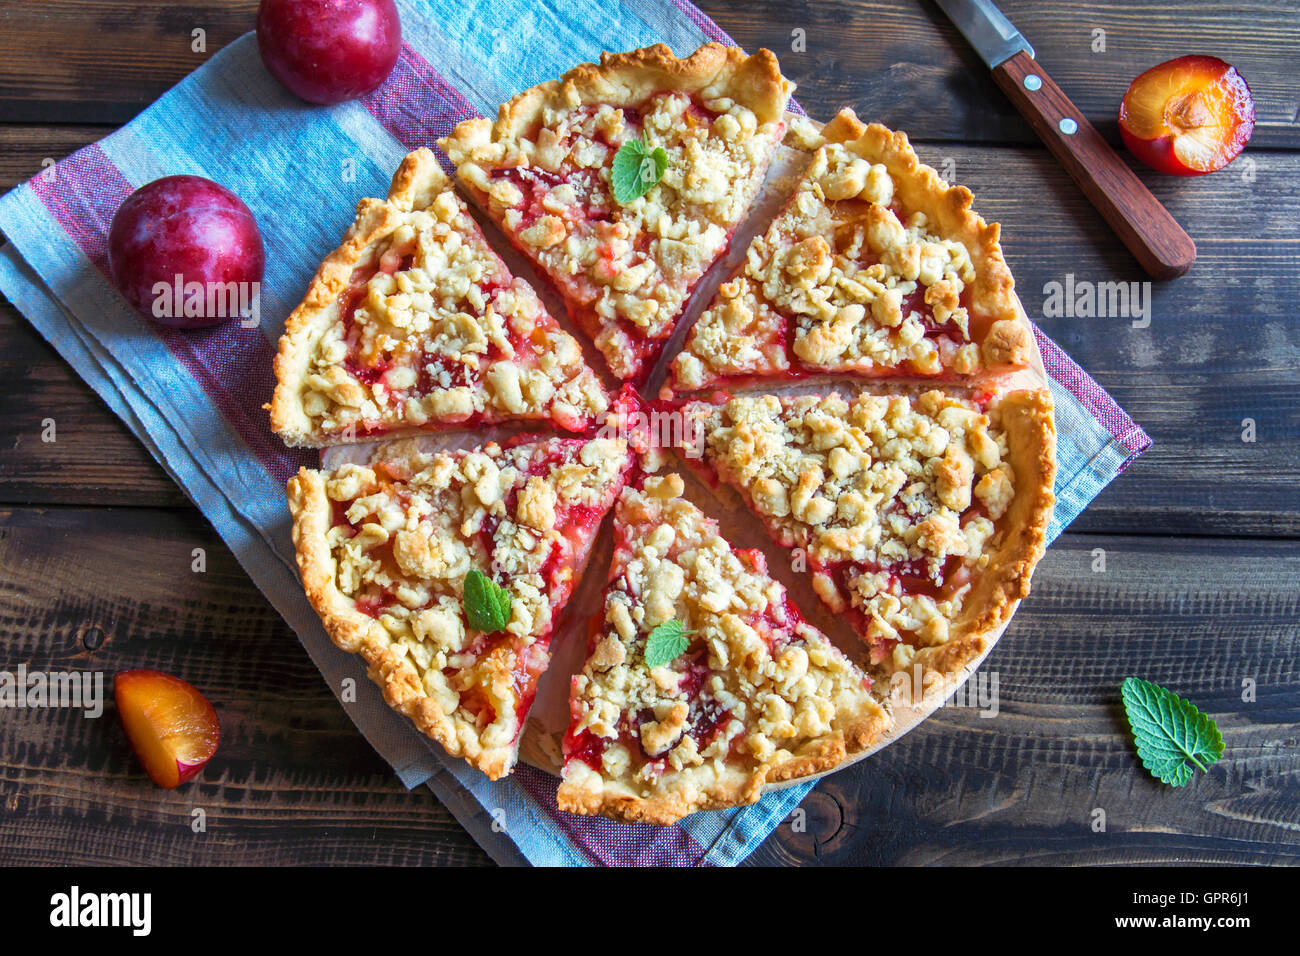 Homemade shortcrust plum cake with crumble on wooden background - Stock Image